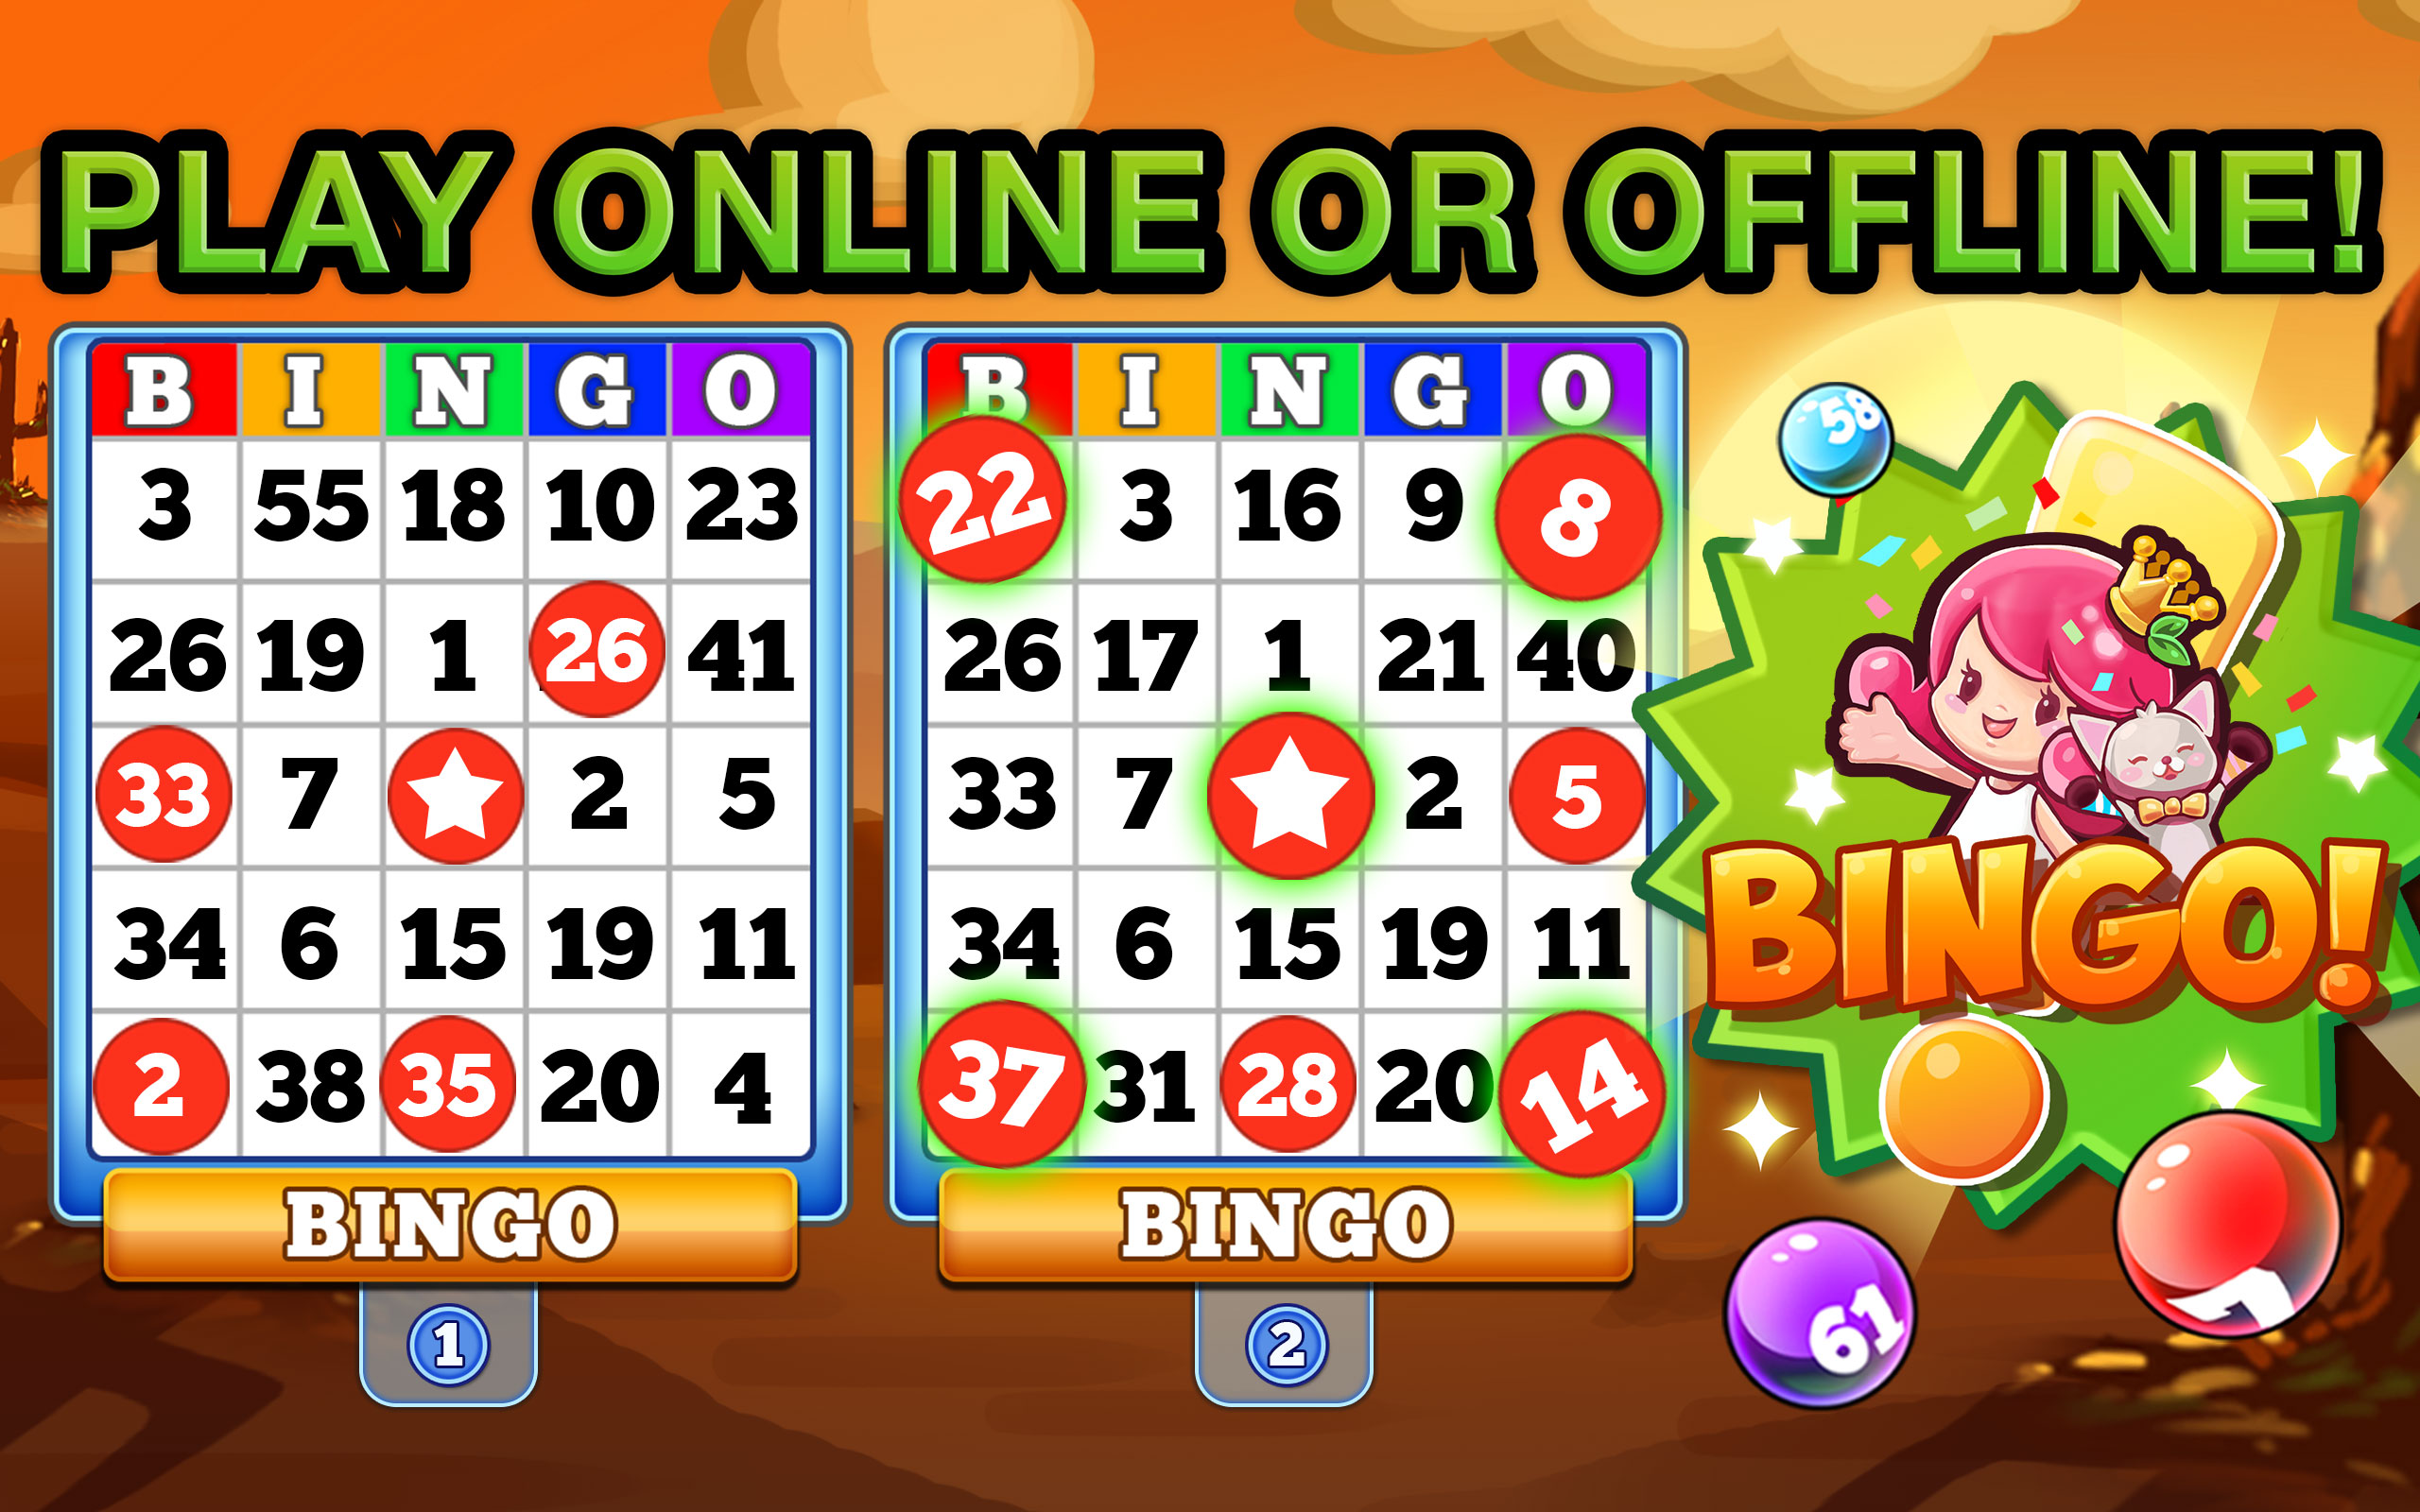 Amazon Com Bingo Heaven Free Bingo Games Download To Play For Free Online Or Offline